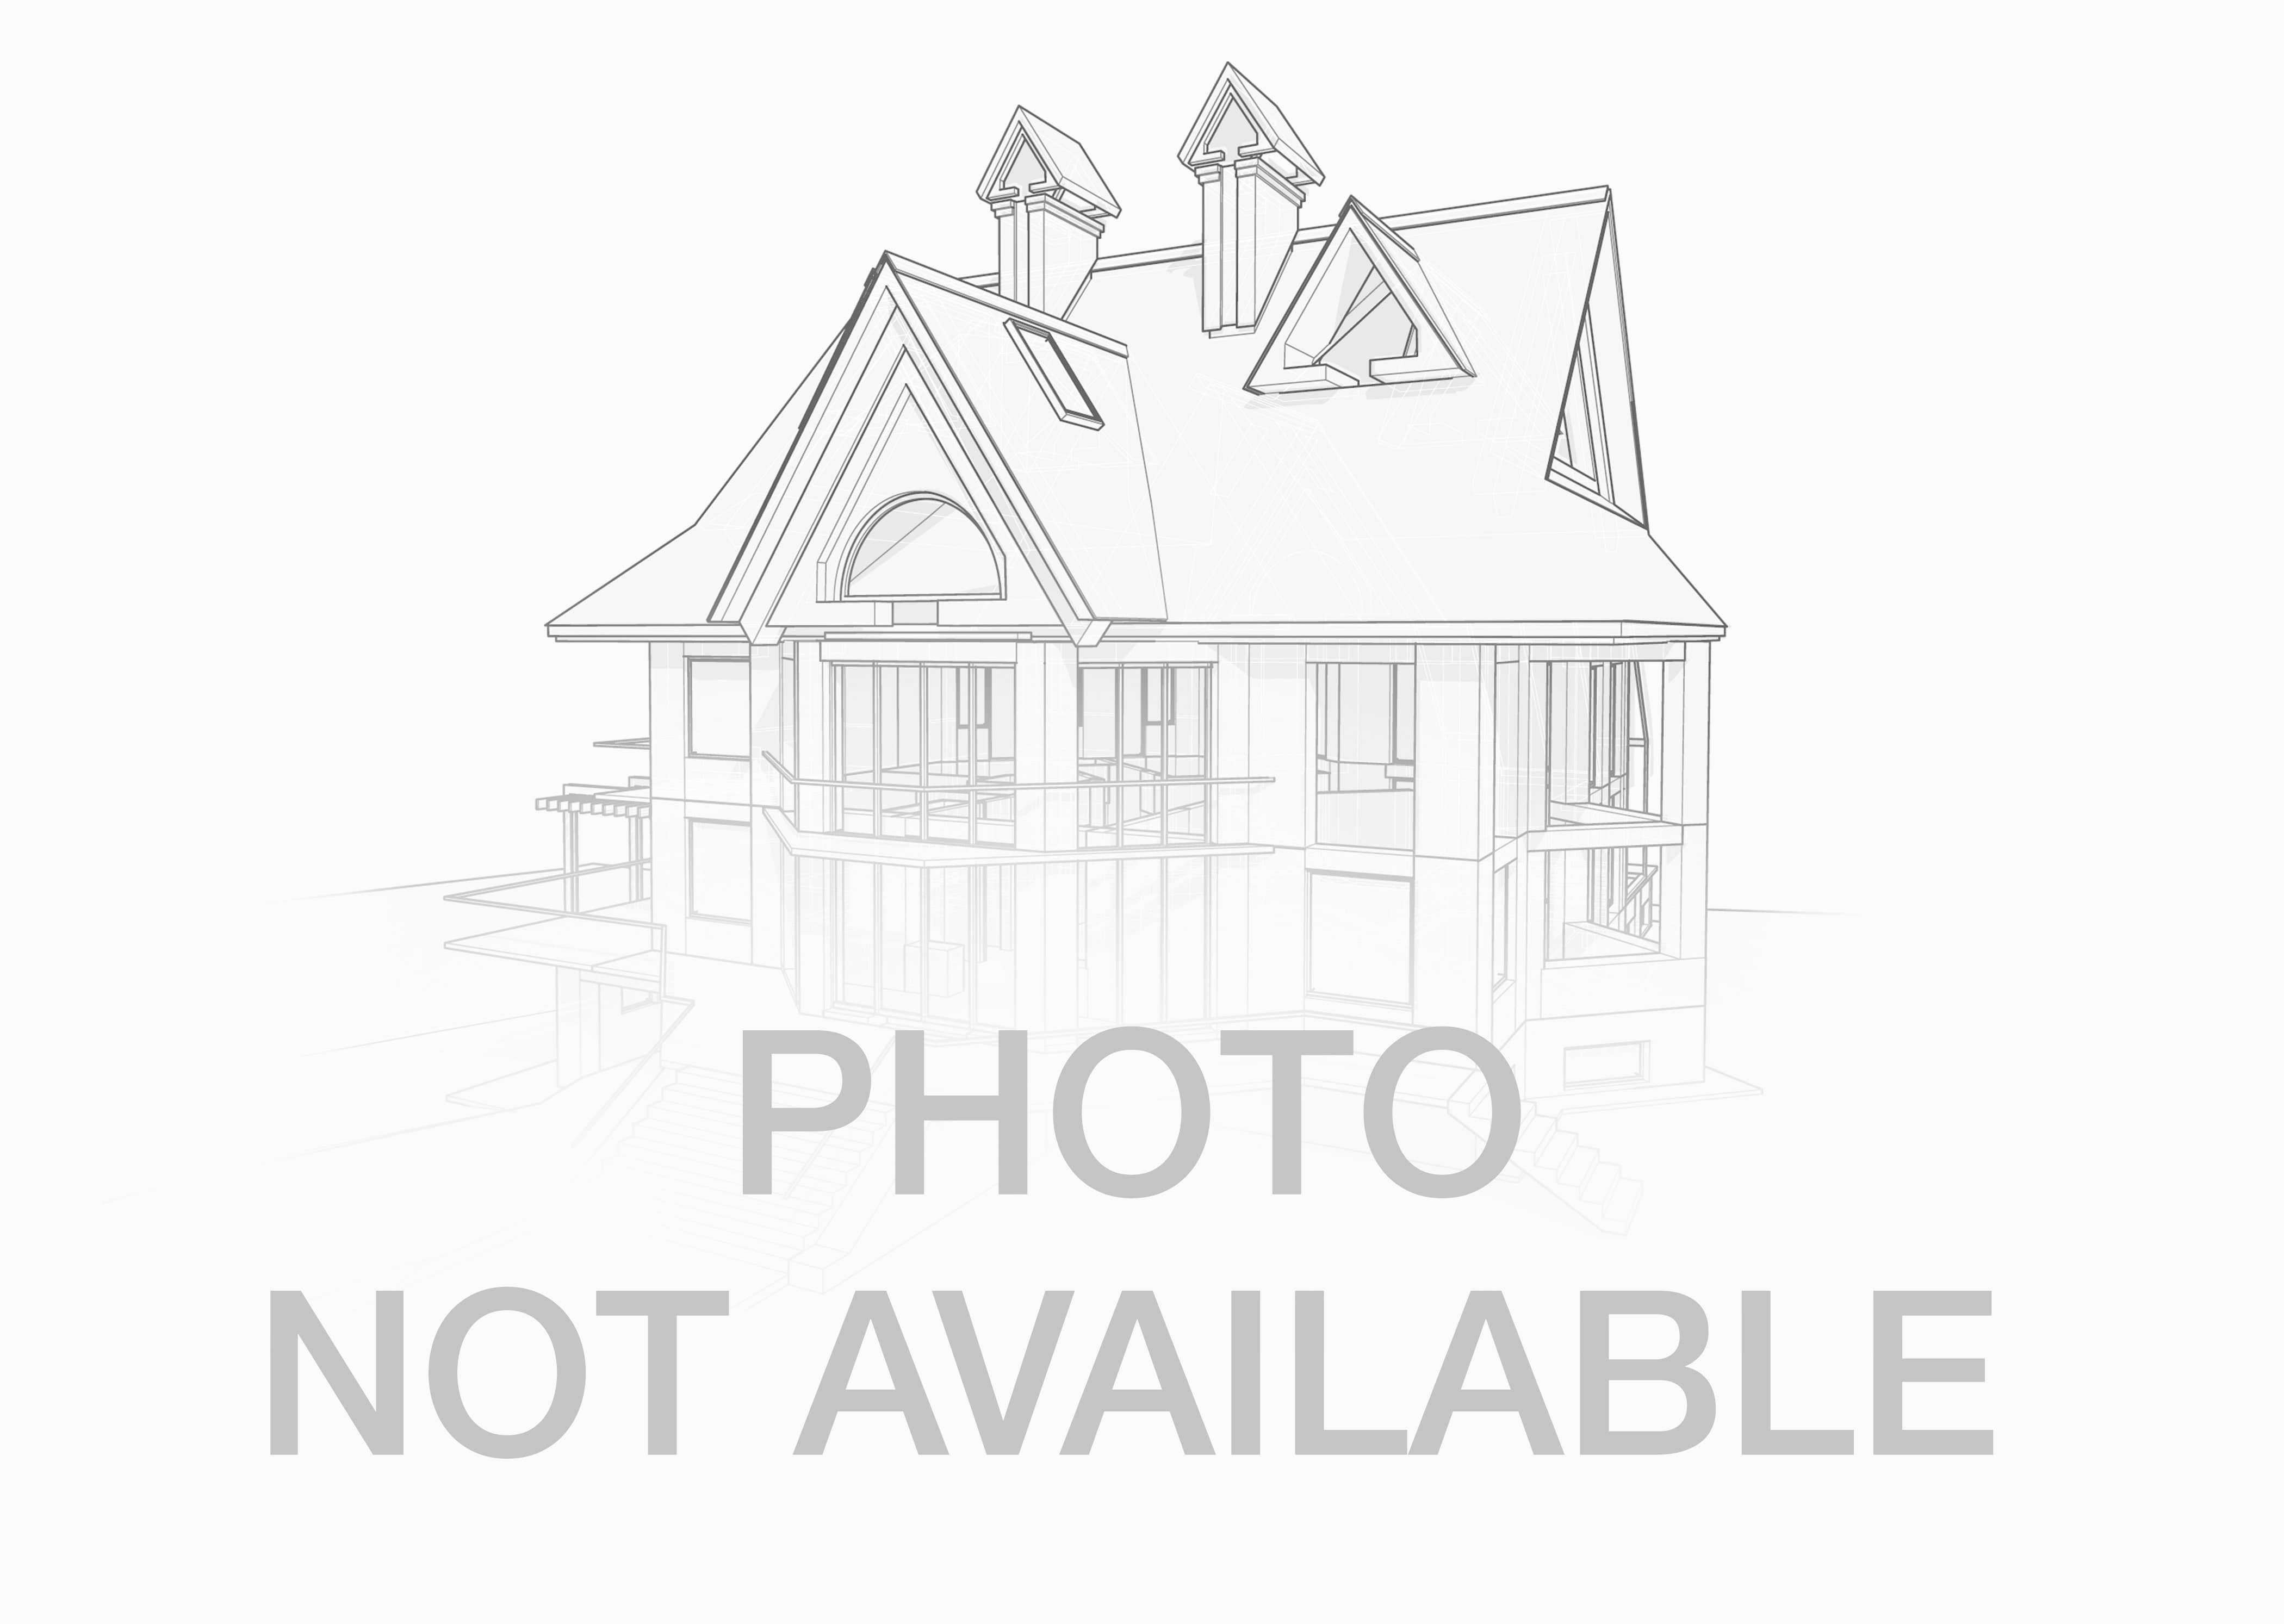 217/217A Stones Point RD, Cushing, ME 04563